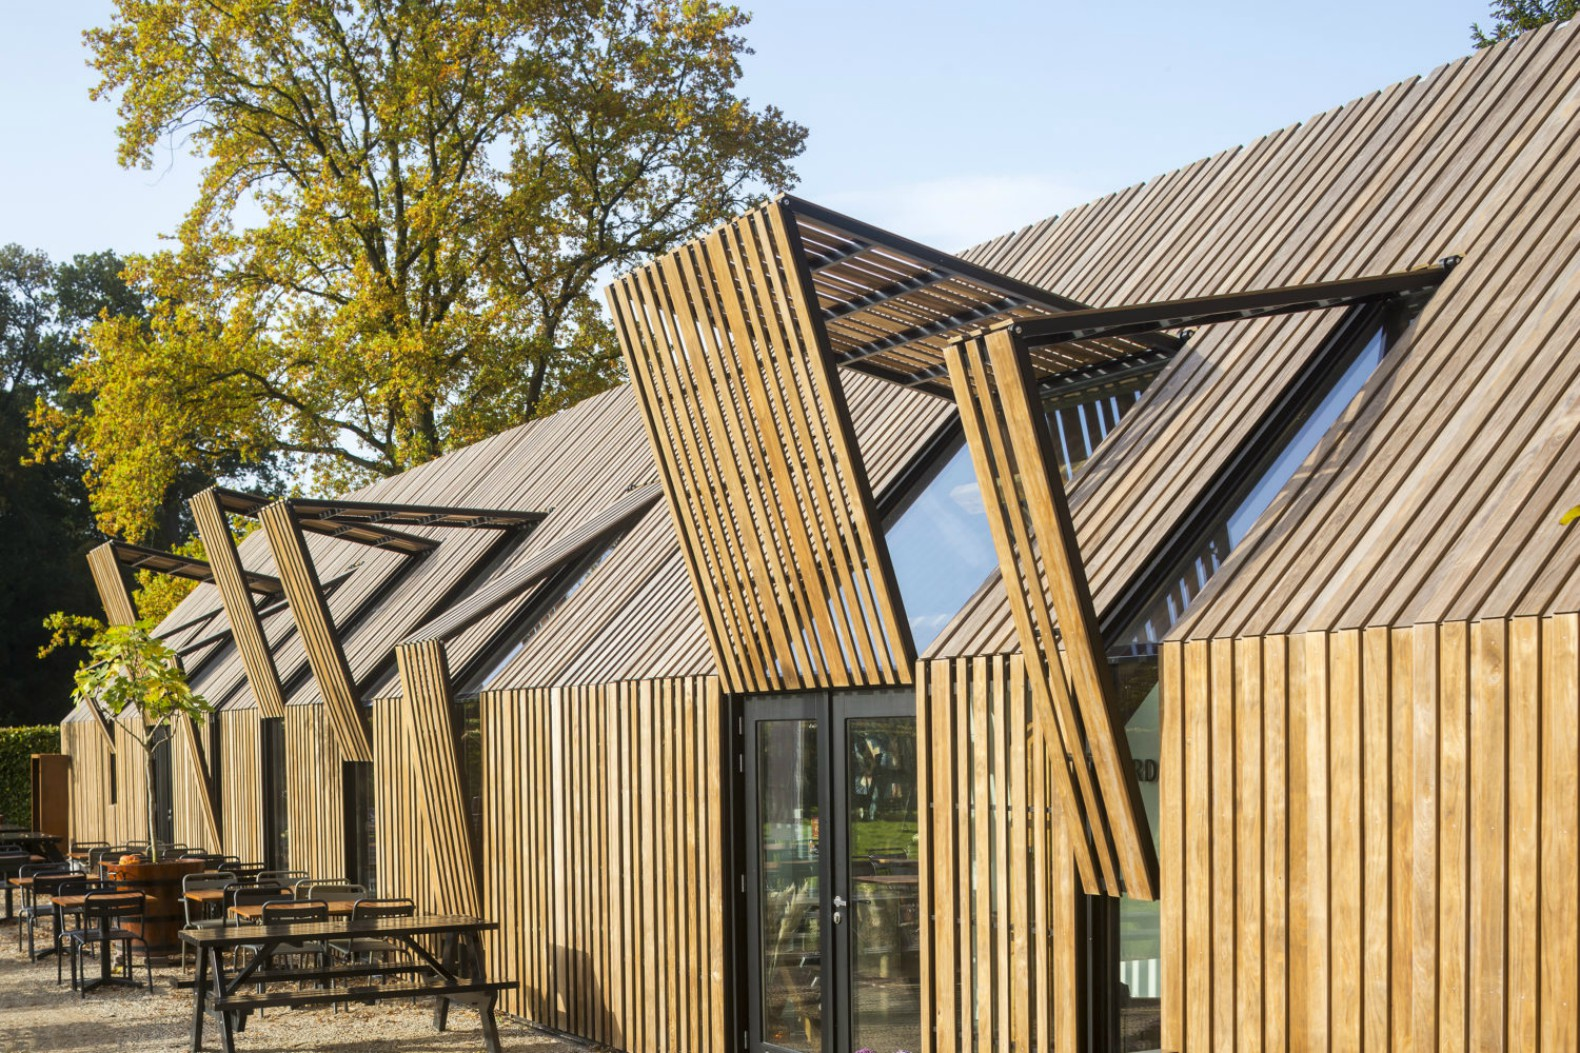 70F architecture Hof van Duivenvoorde Duivenvoordes Courtyard movable buildings transparent buildings & Petting Farm Nominated for 2009 World Architecture Award | Inhabitat ...